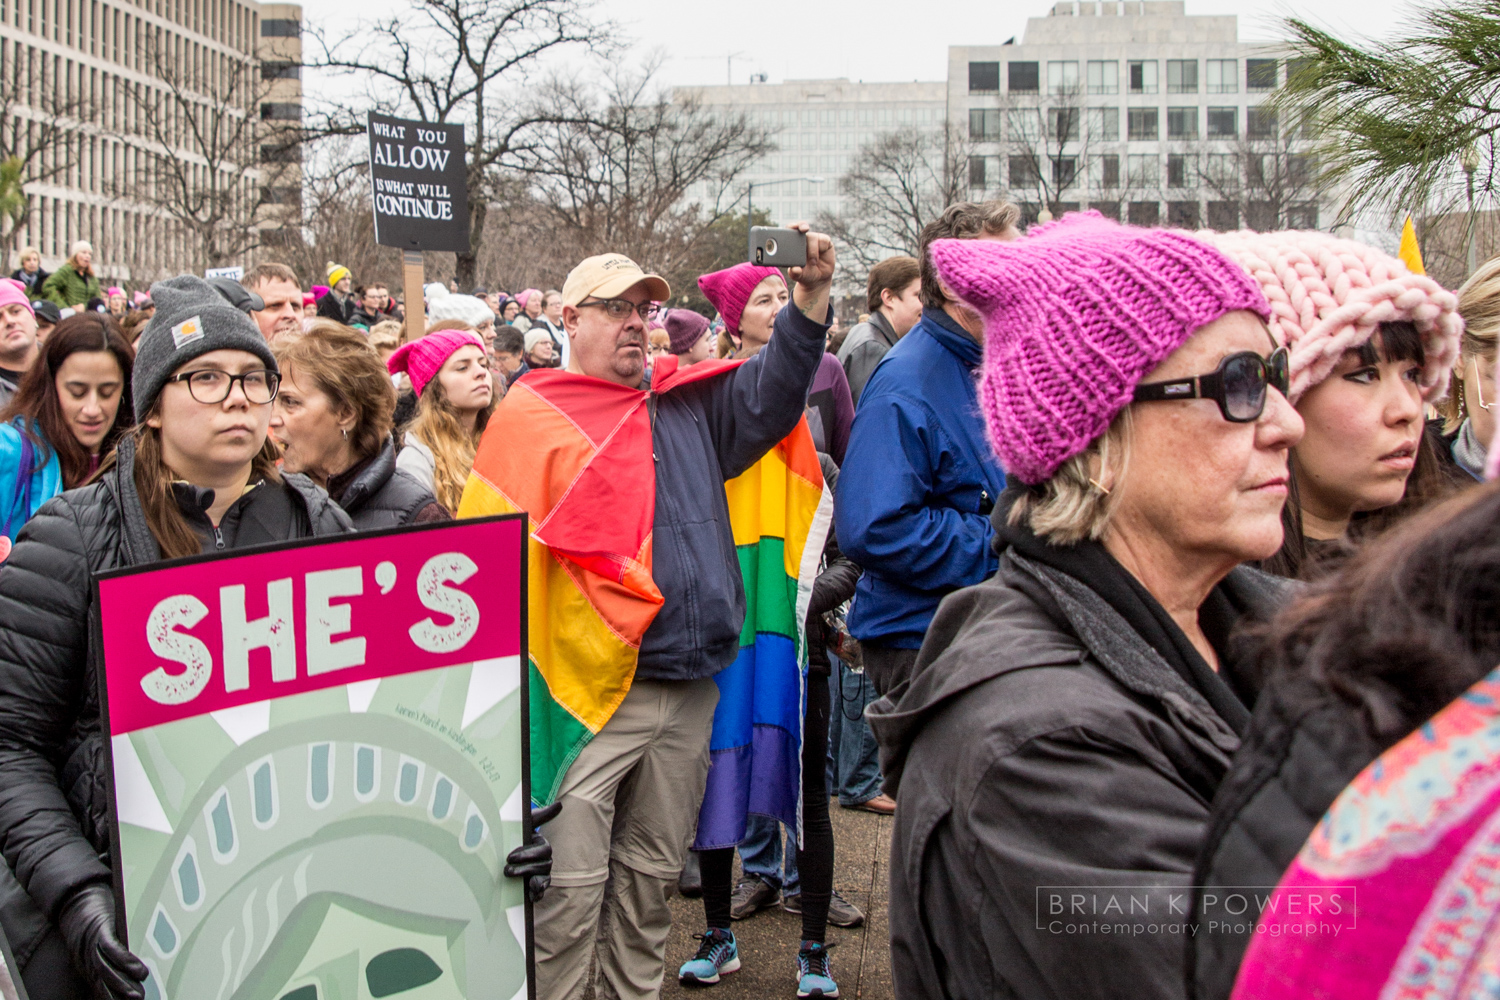 Womens-march-on-washington-2017-Brian-K-Powers-Photography-0029.jpg